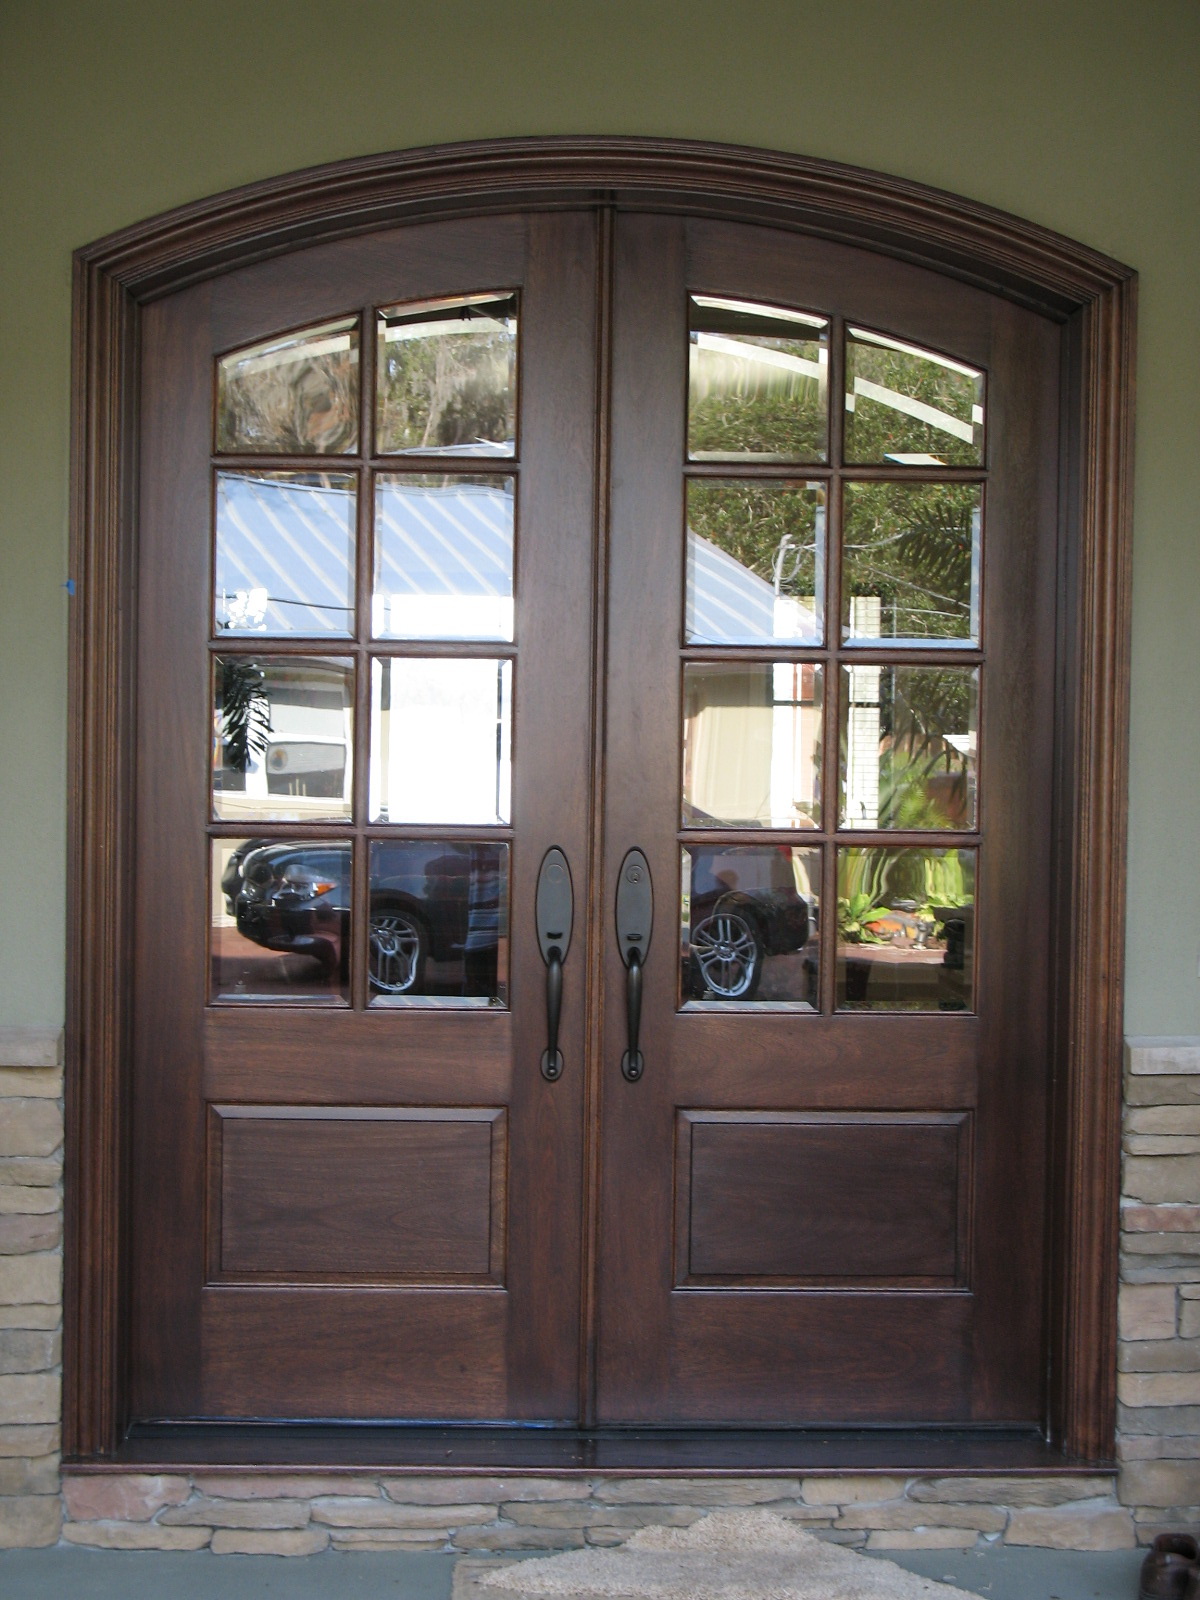 1000 images about front doors on pinterest for French doors for sale uk